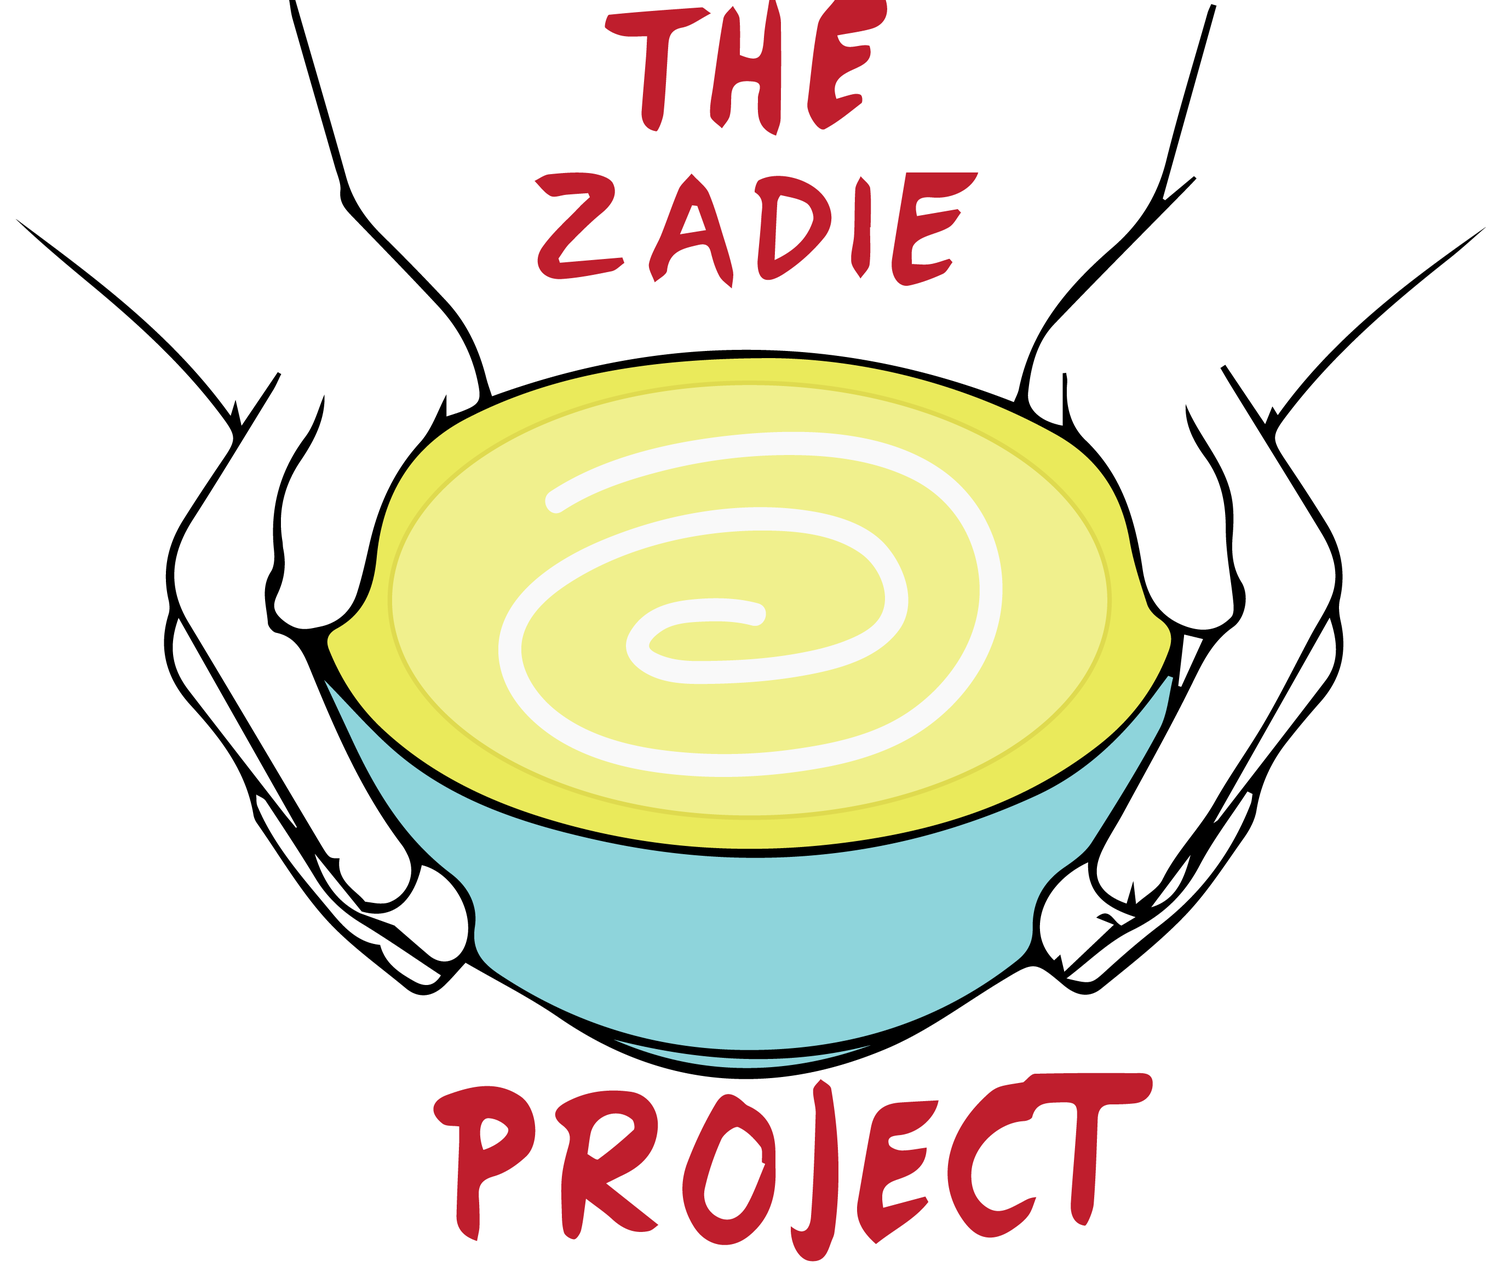 The Zadie Project